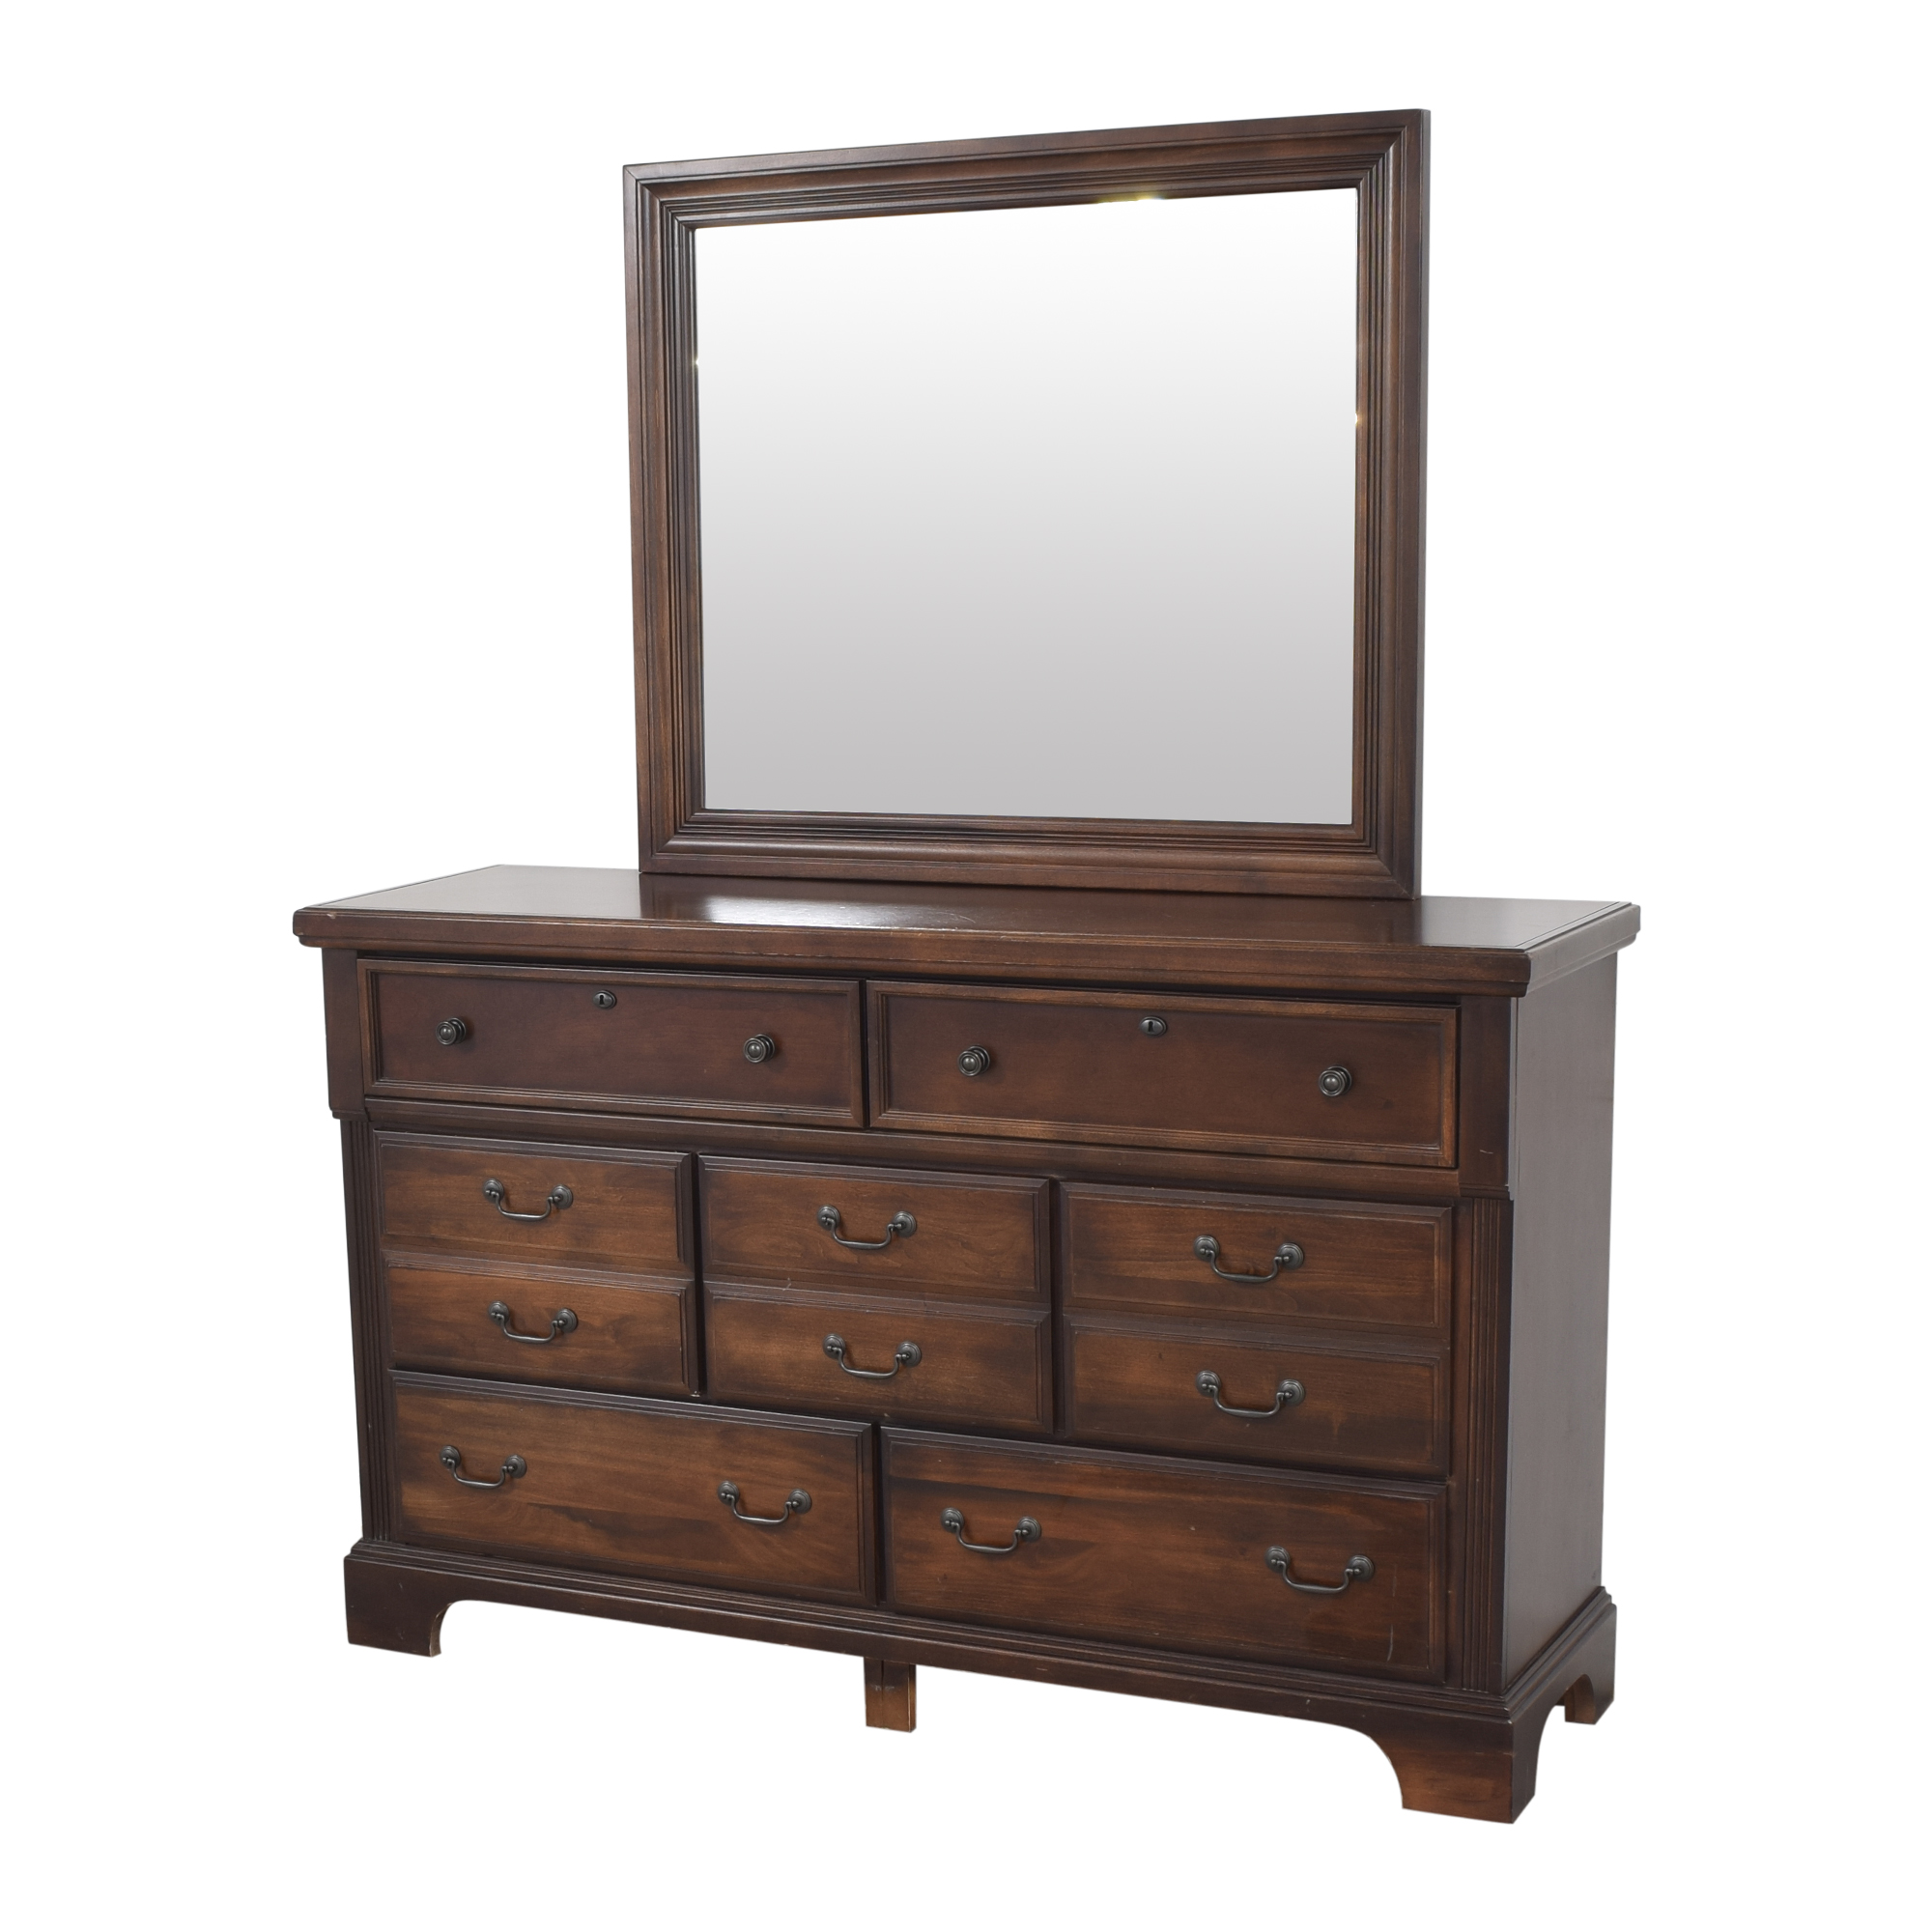 Vaughan-Bassett Vaughan-Bassett Triple Dresser with Mirror for sale